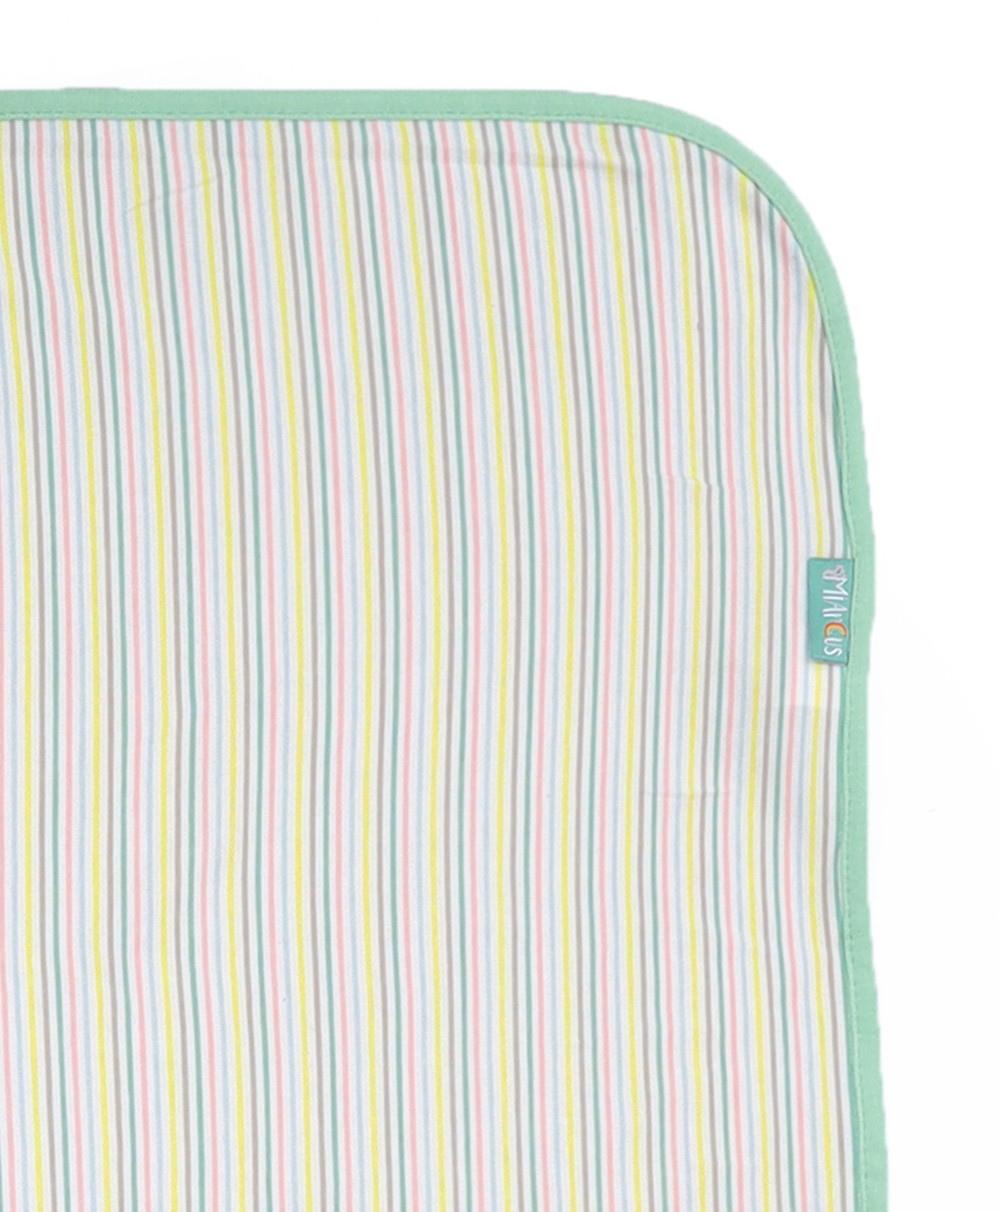 Muffle First Layer Sheet - Arcus ( Pack of 3)